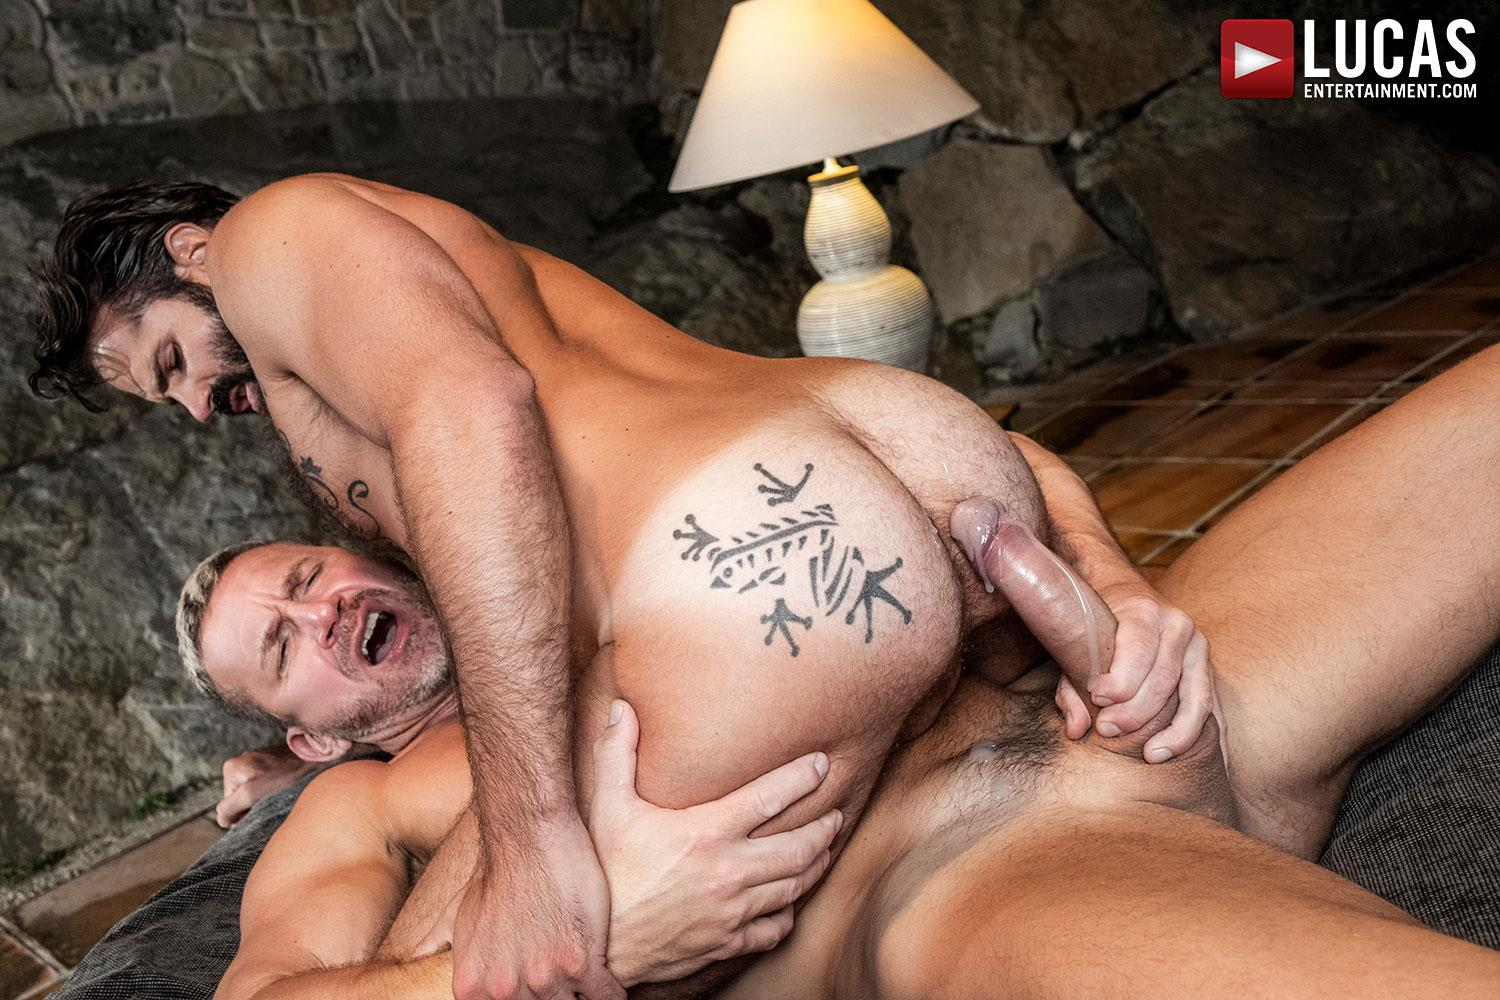 Lucas-Entertainment-Tomas-Brand-and-Dani-Robles-Big-Dick-Daddy-Barebacking-Younger-19 Muscle Daddy Tomas Brand Breeds Dani Robles With His Big Uncut Cock